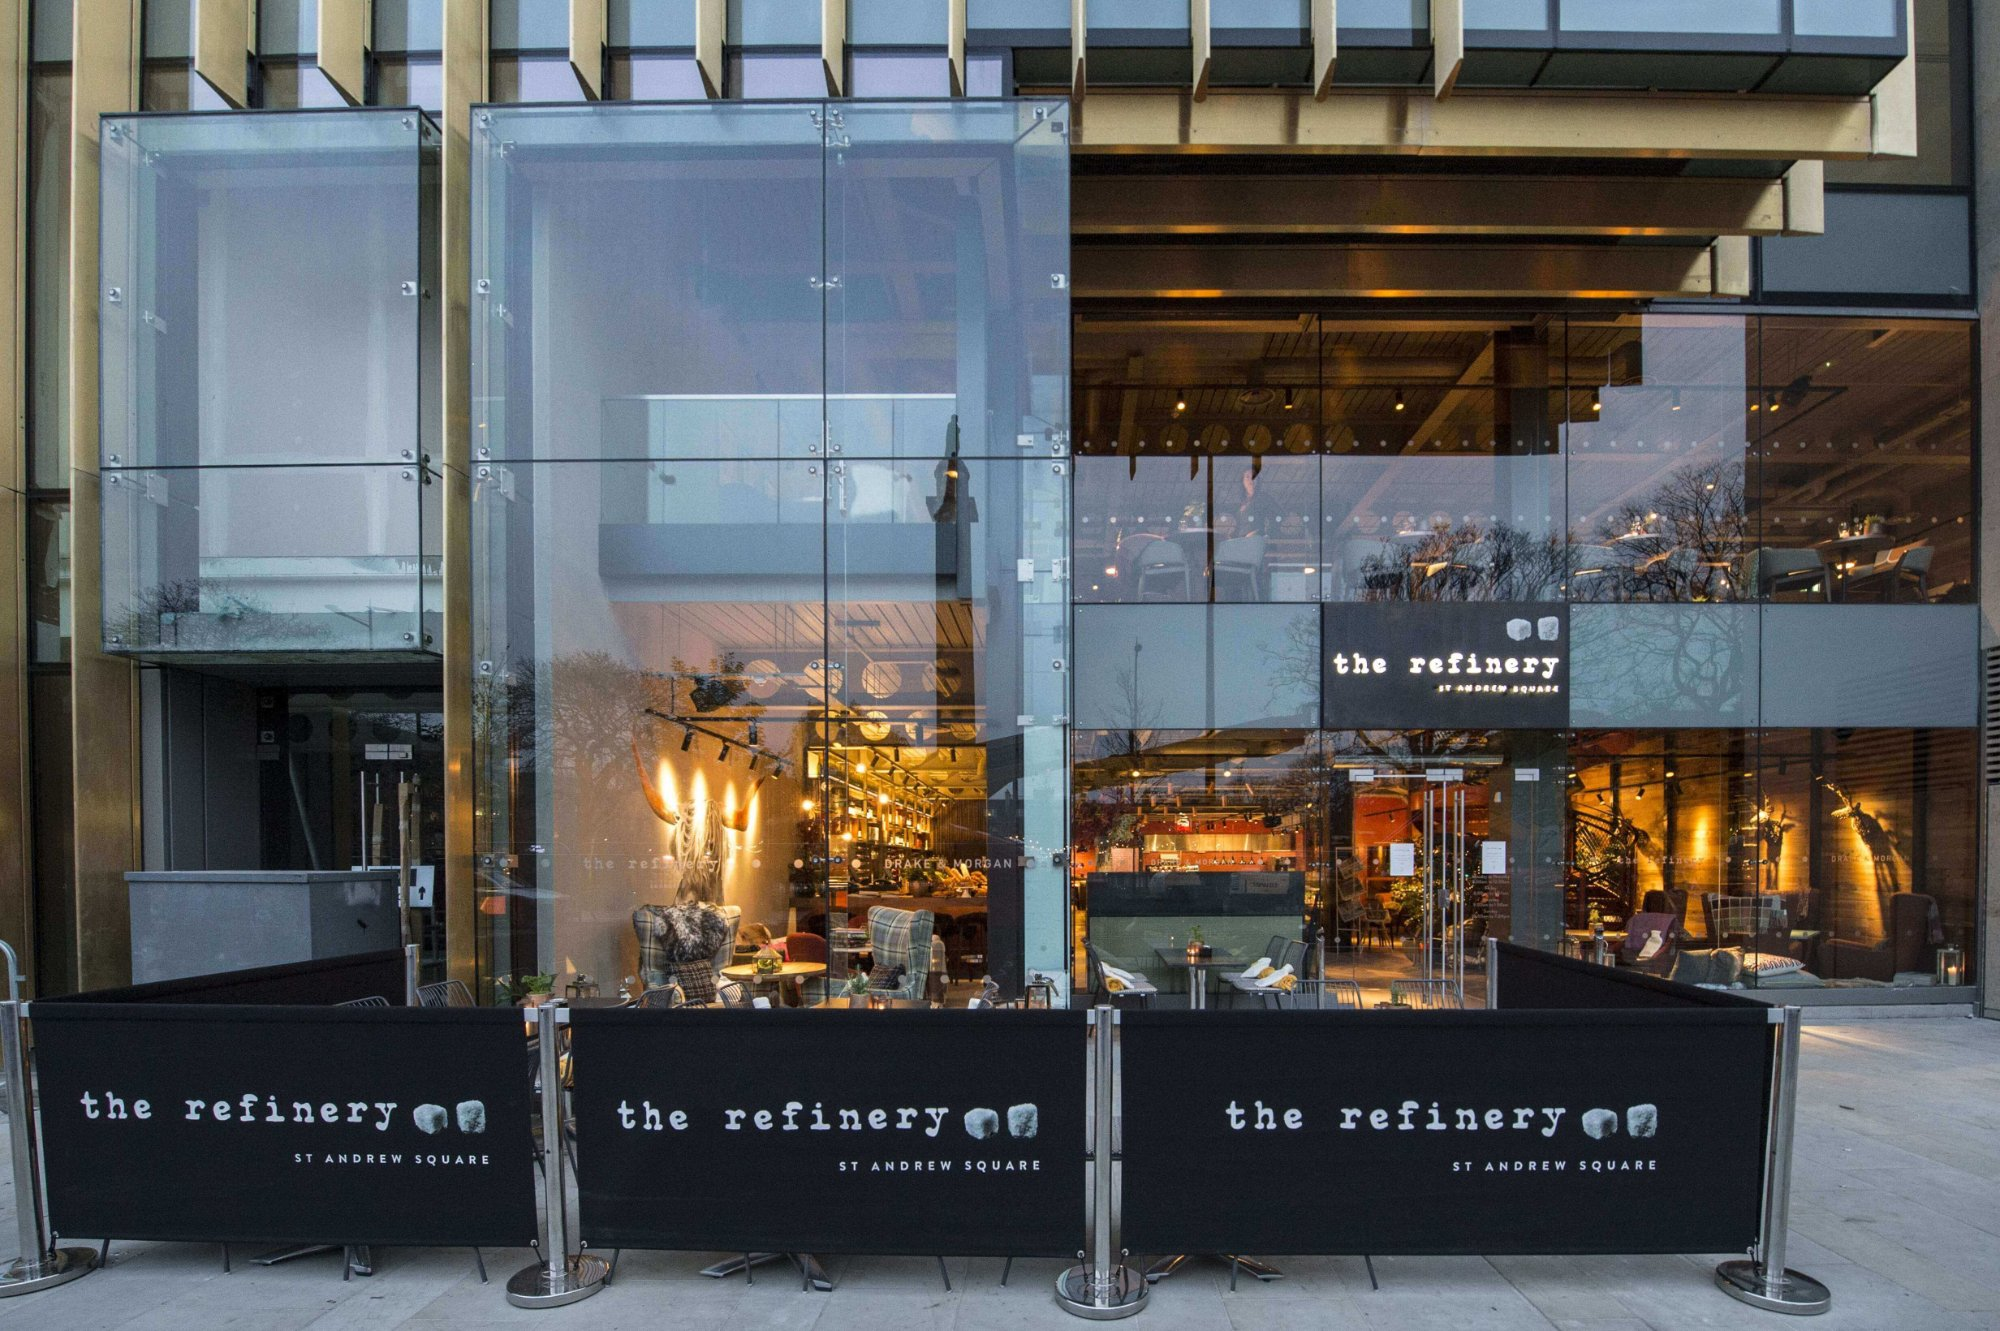 The refinery st andrew square edinburgh new town for O kitchen edinburgh menu